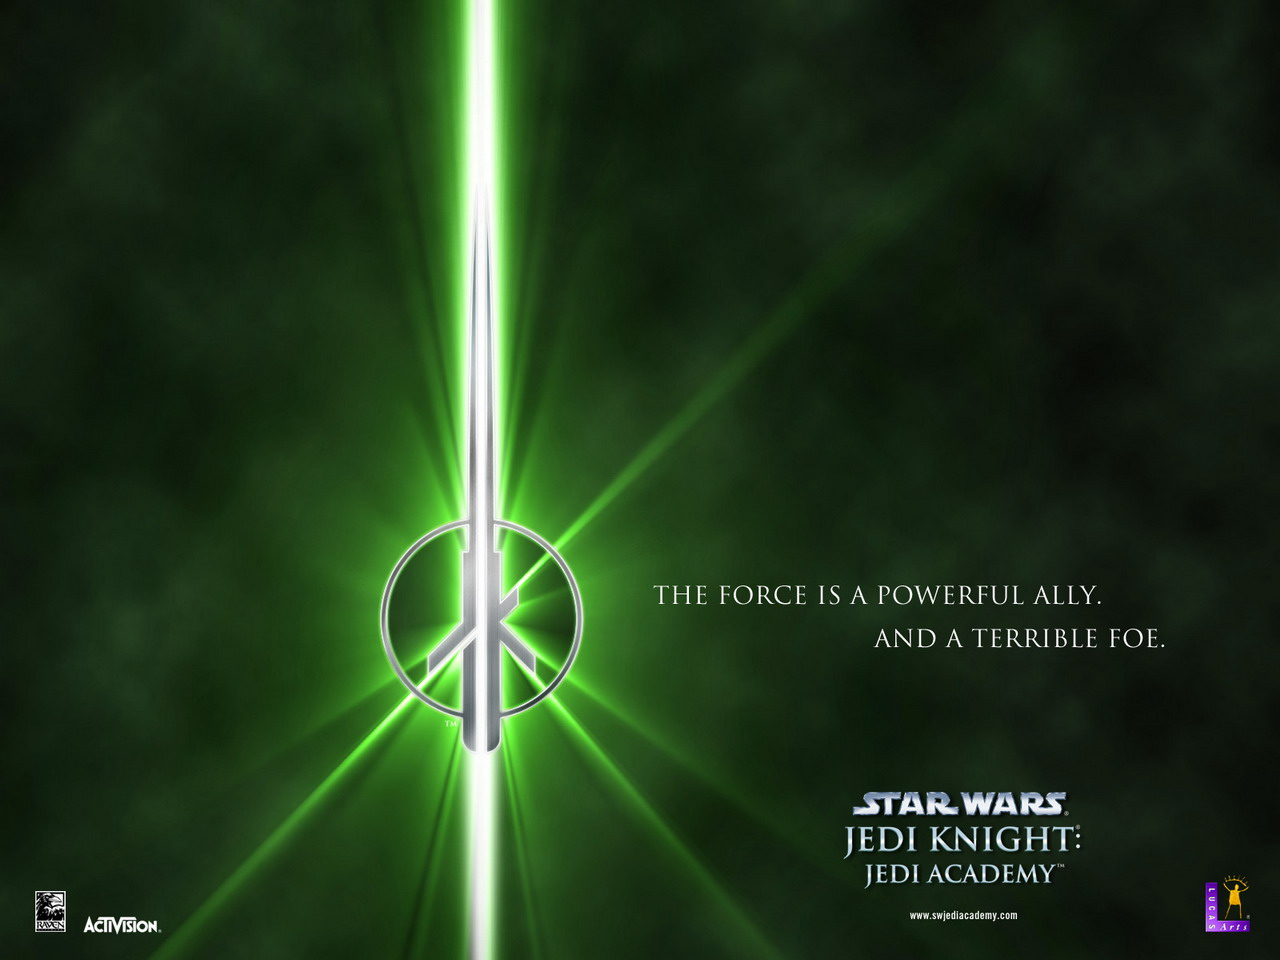 Jedi Knight Wallpaper 1280x960